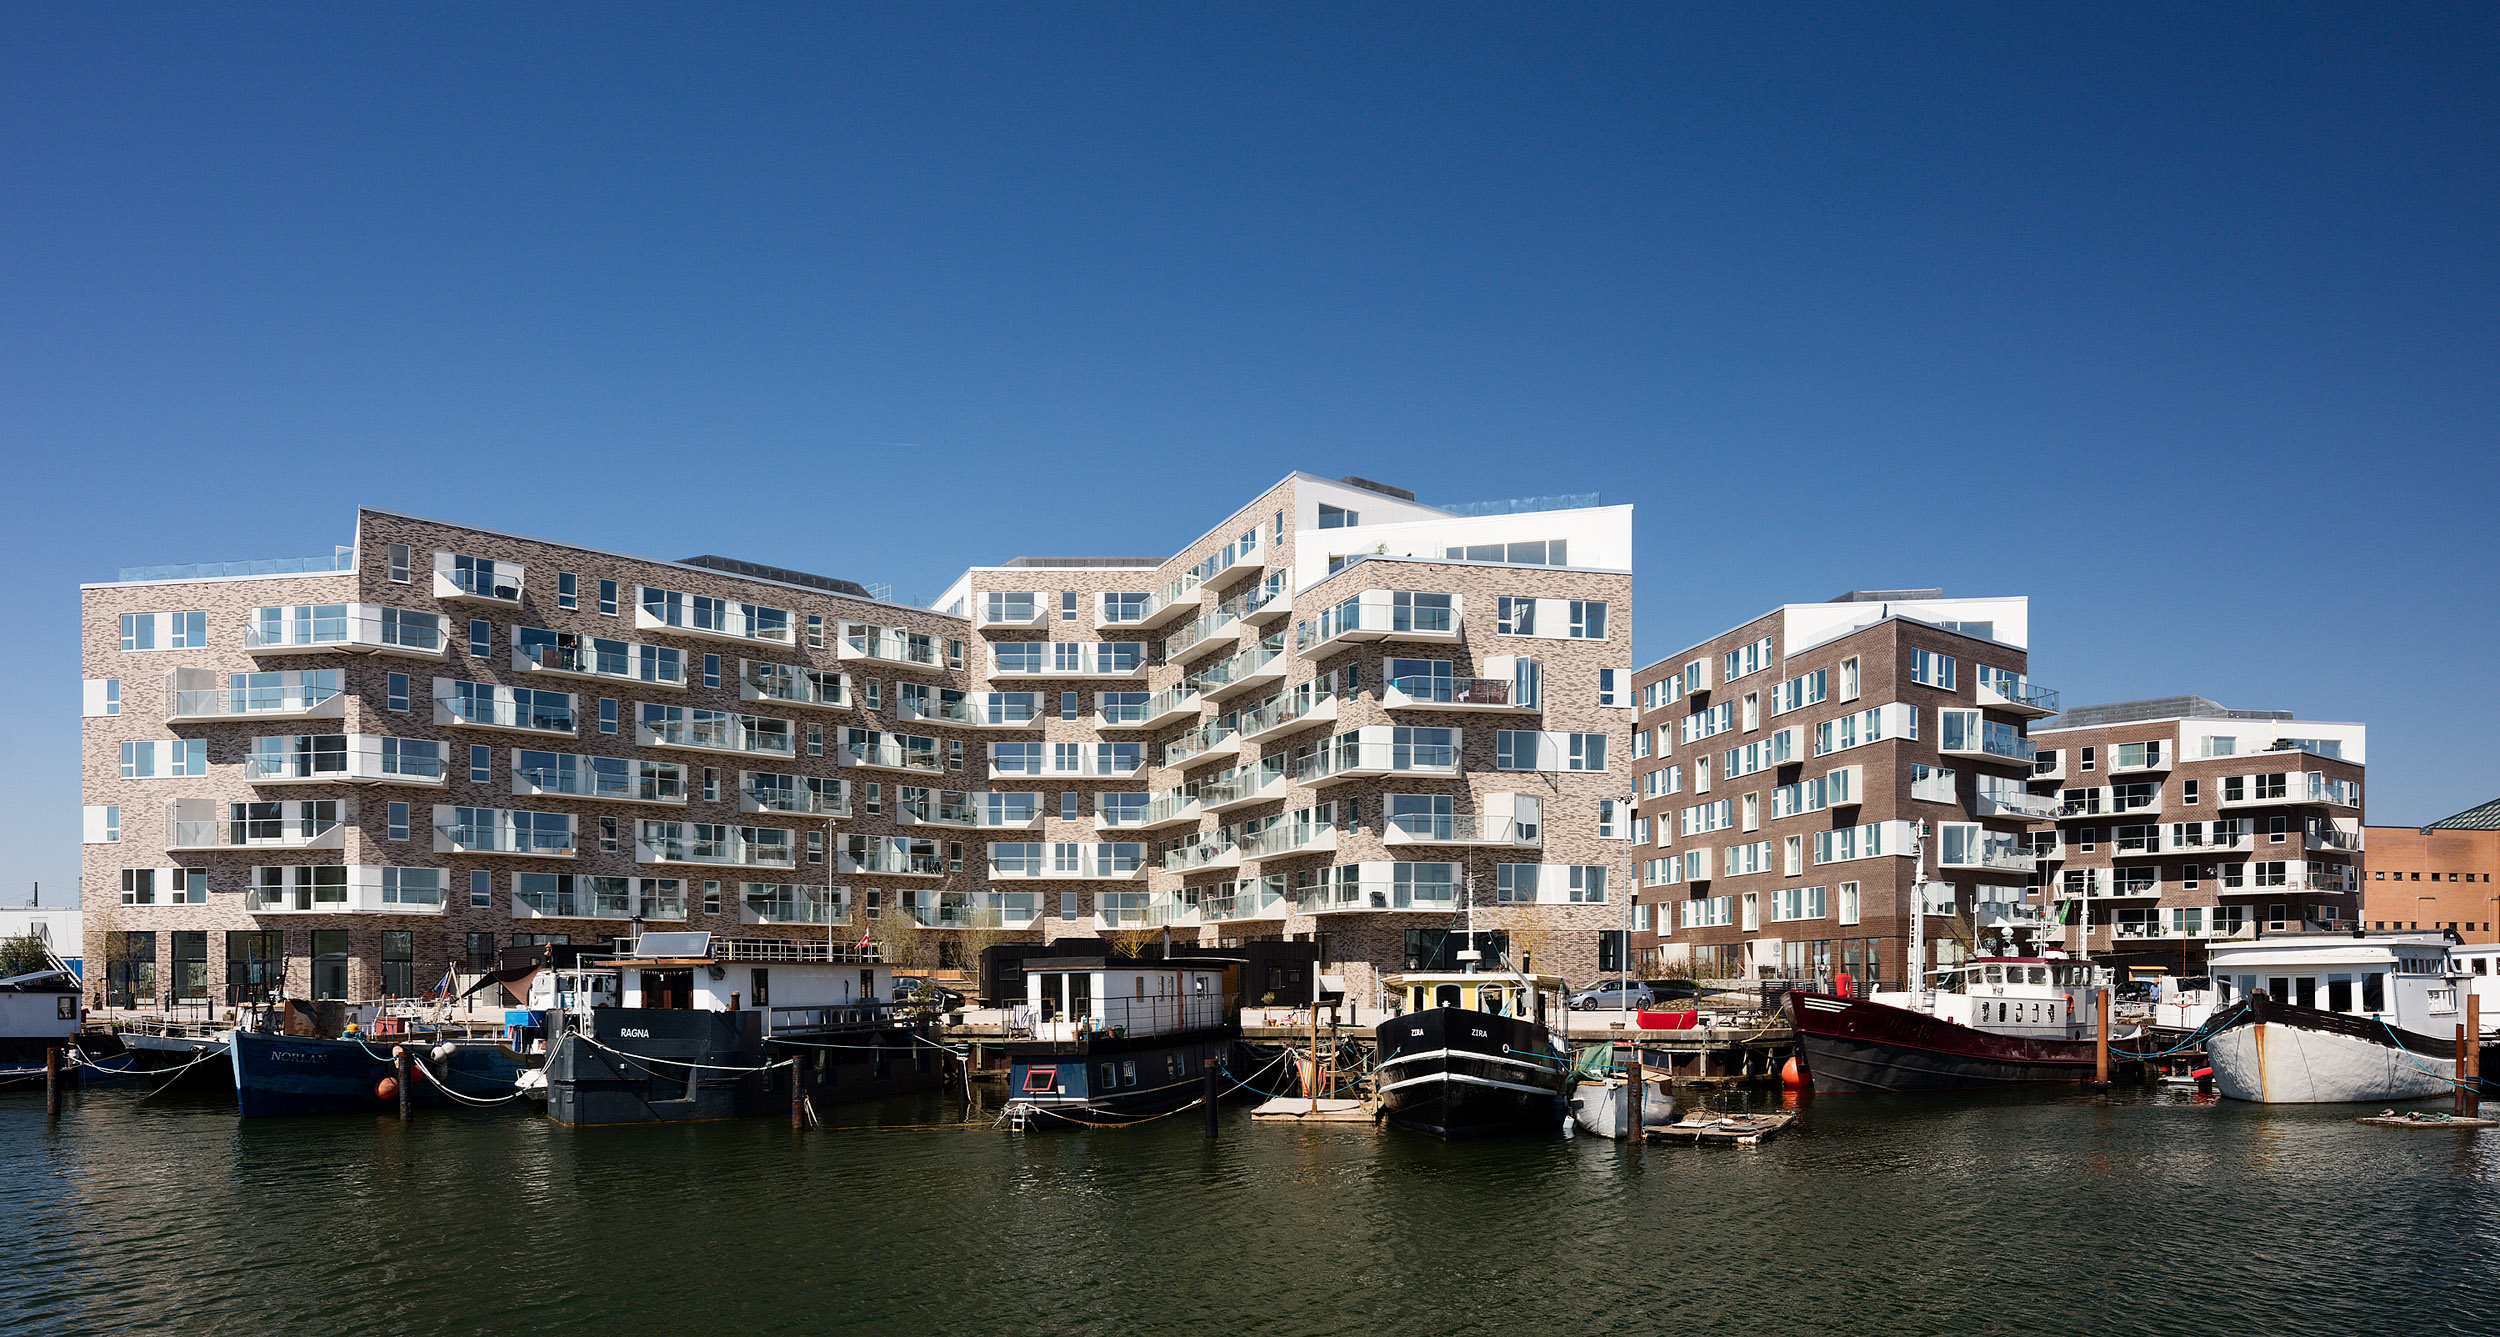 Residential housing, Skibbroen, realised by Holscher Nordberg Architects. Photographed from early morning throughout the day, letting the sun emphasise the various aspects of the buildings character. The special life that characterizes Skibbroen occurs due to users' various activities and the mix of tranquility, activity, transit and practical doings.The uniqueness of the channel and harbor space is maintained. Photographed from early morning throughout the day, letting the sun emphasise the various aspects of the buildings character.